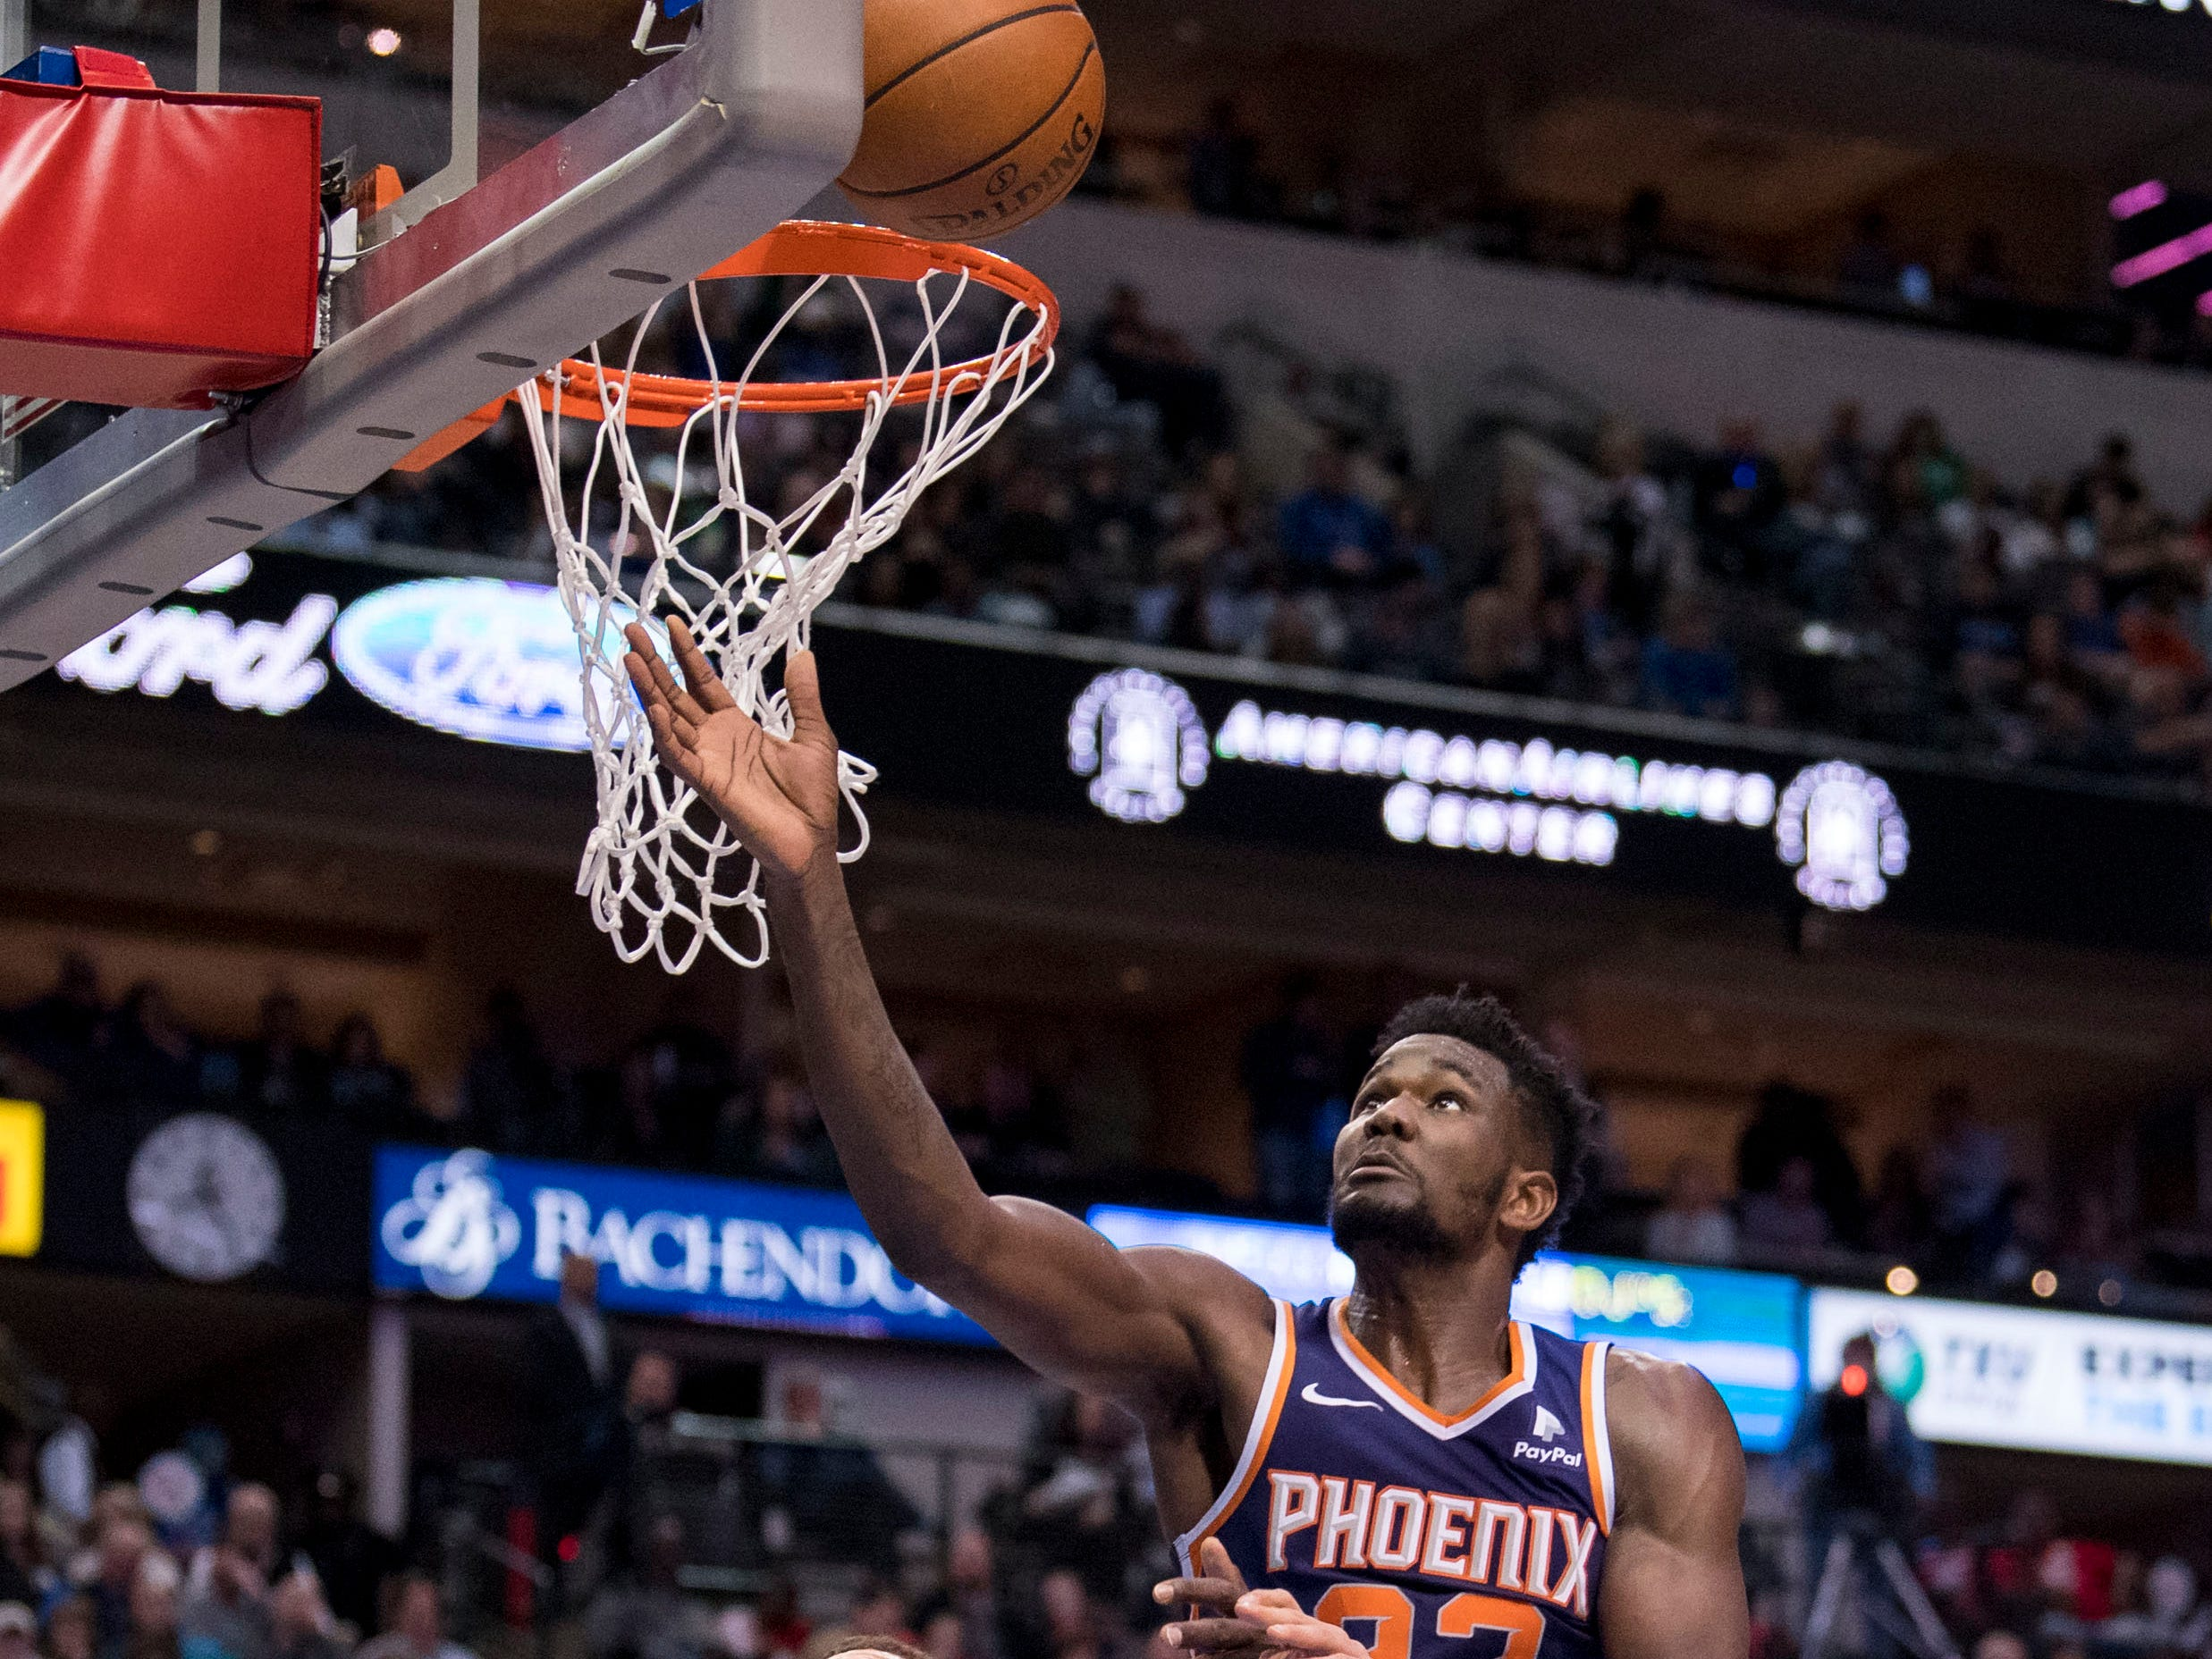 Jan 9, 2019; Dallas, TX, USA; Dallas Mavericks forward Dwight Powell (7) and Phoenix Suns center Deandre Ayton (22) fight for the rebound during the second quarter at the American Airlines Center. Mandatory Credit: Jerome Miron-USA TODAY Sports